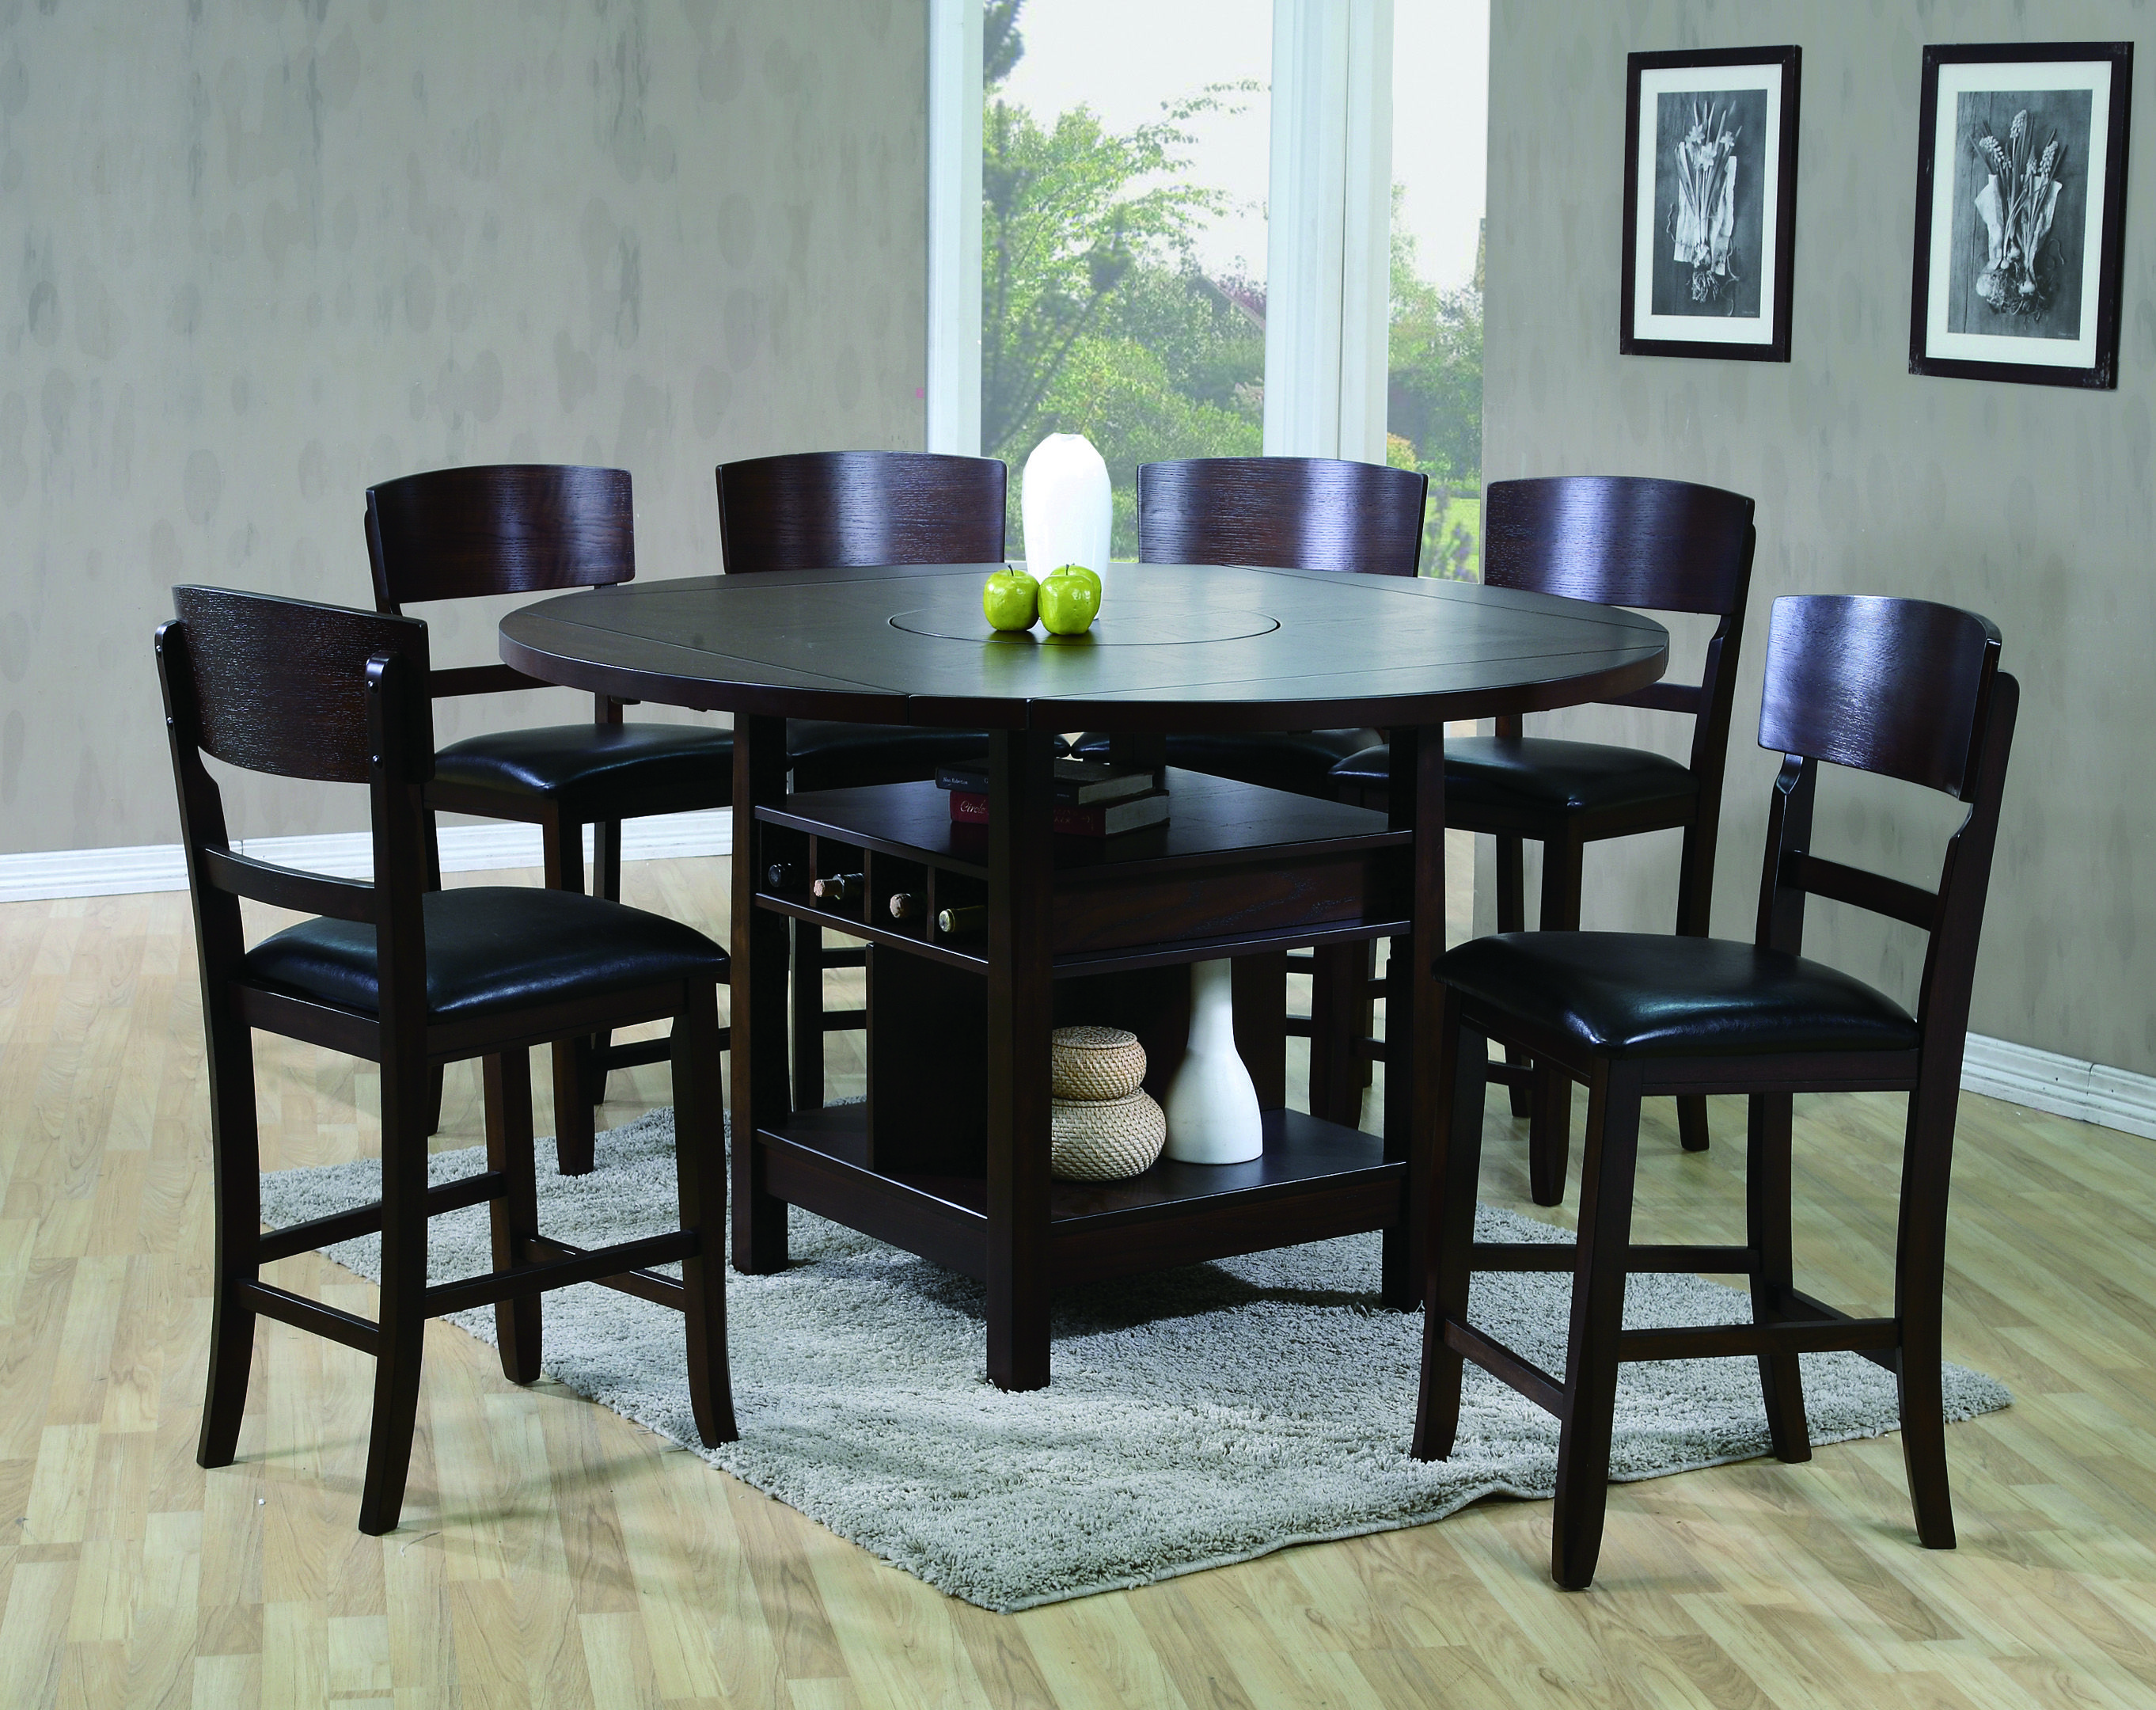 Counter Height Table And Chair Round Dining Table Sets Dining Room Sets Espresso Dining Tables